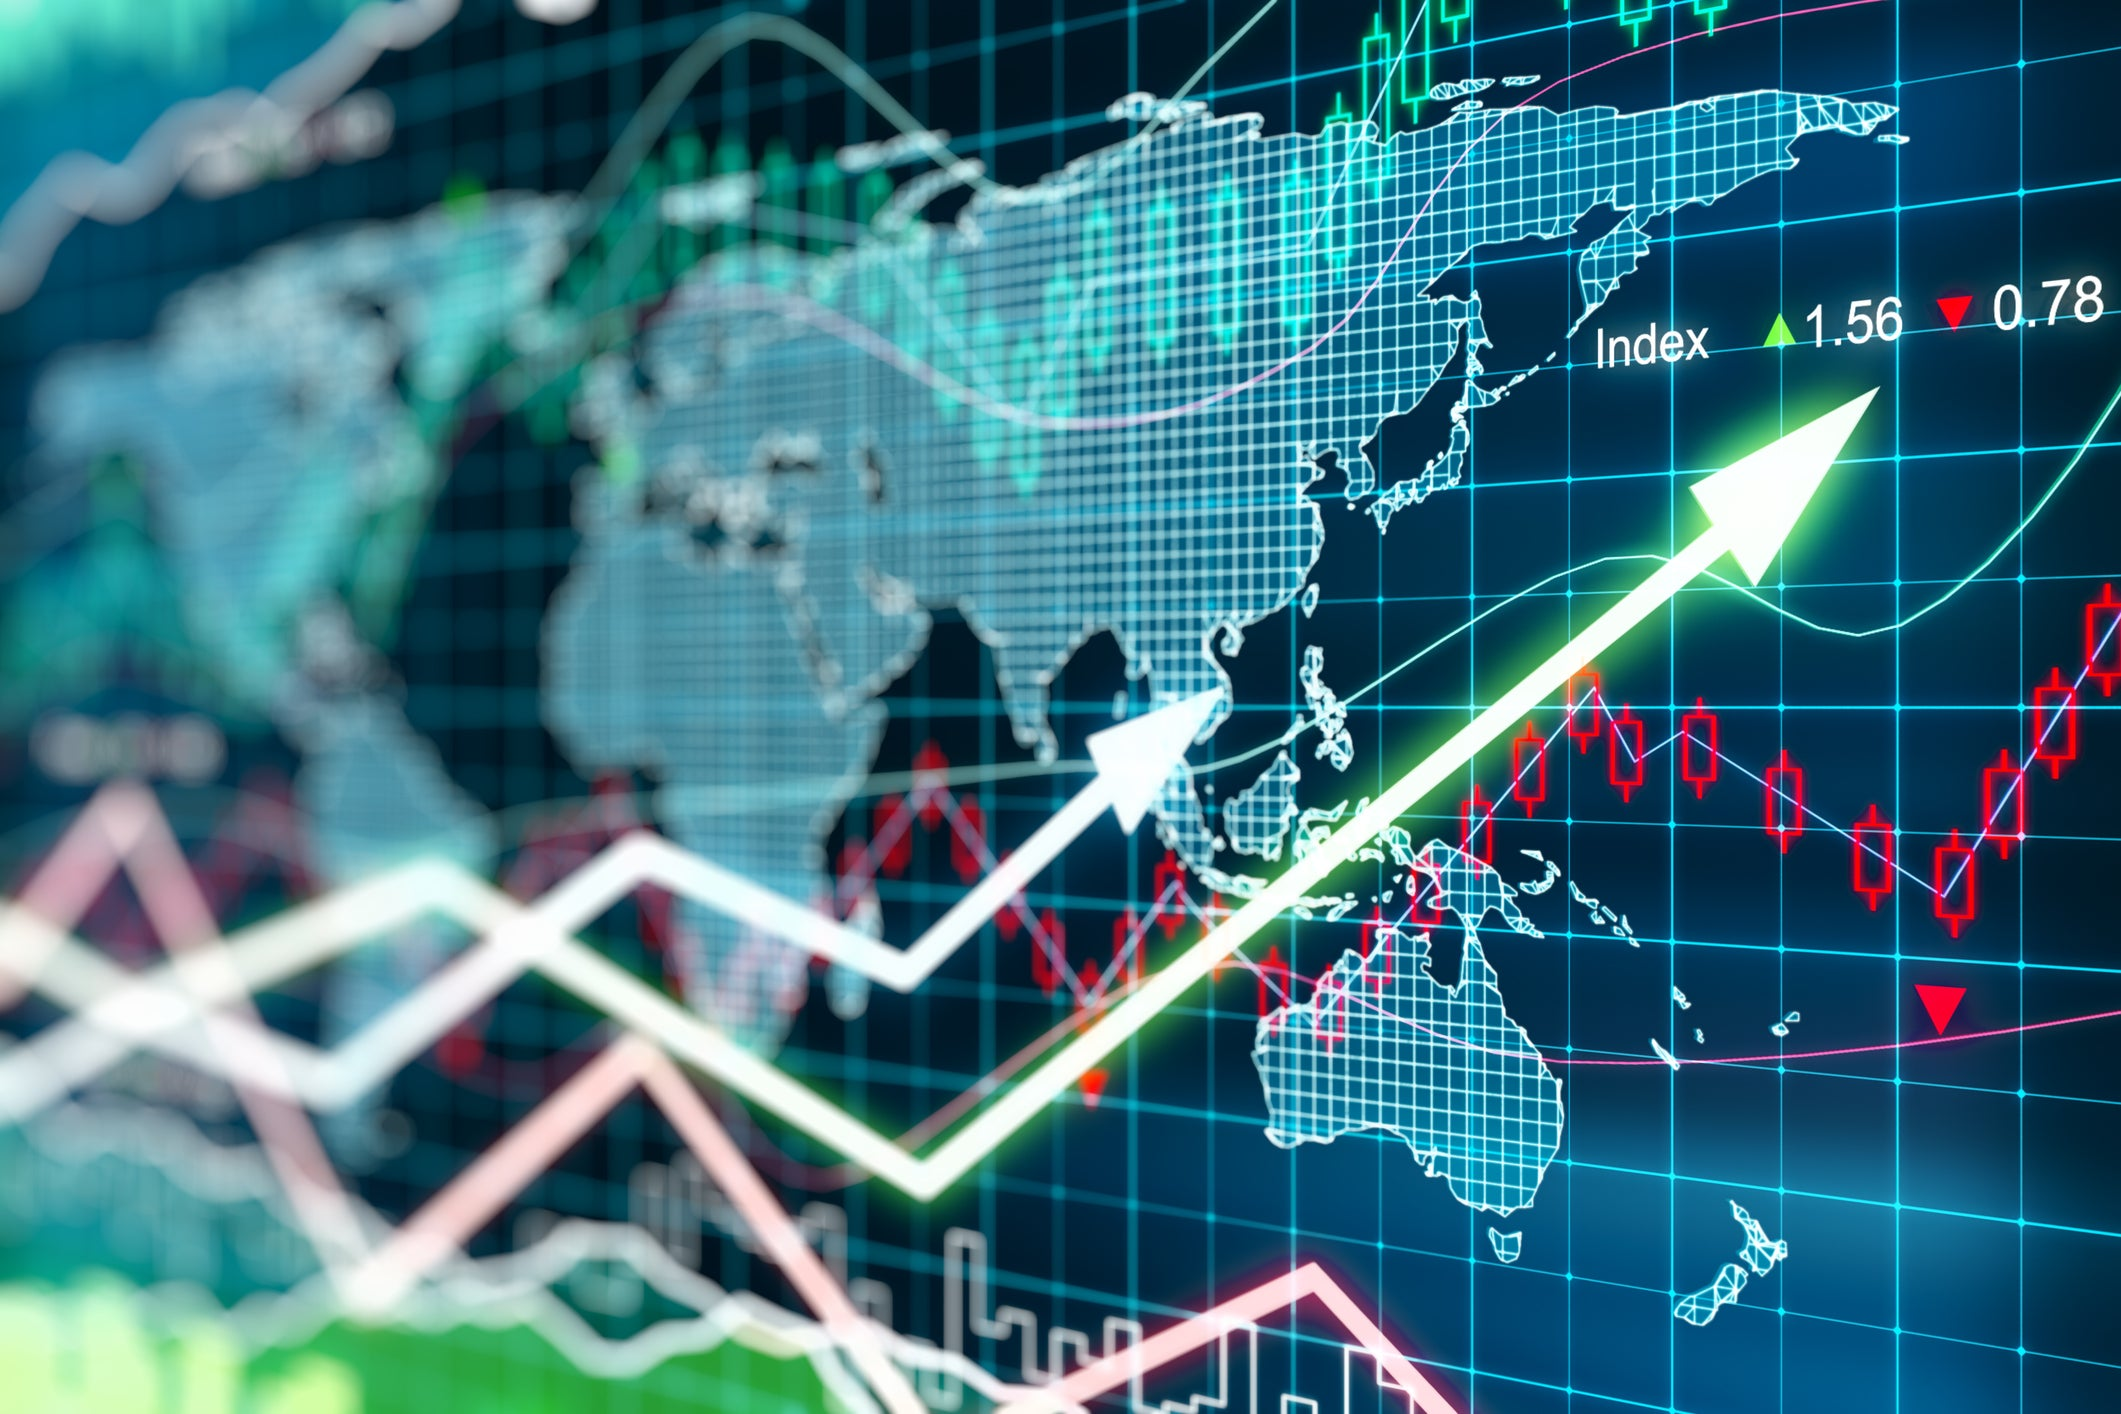 Digital world map overlaid by stock market charts indicating gains